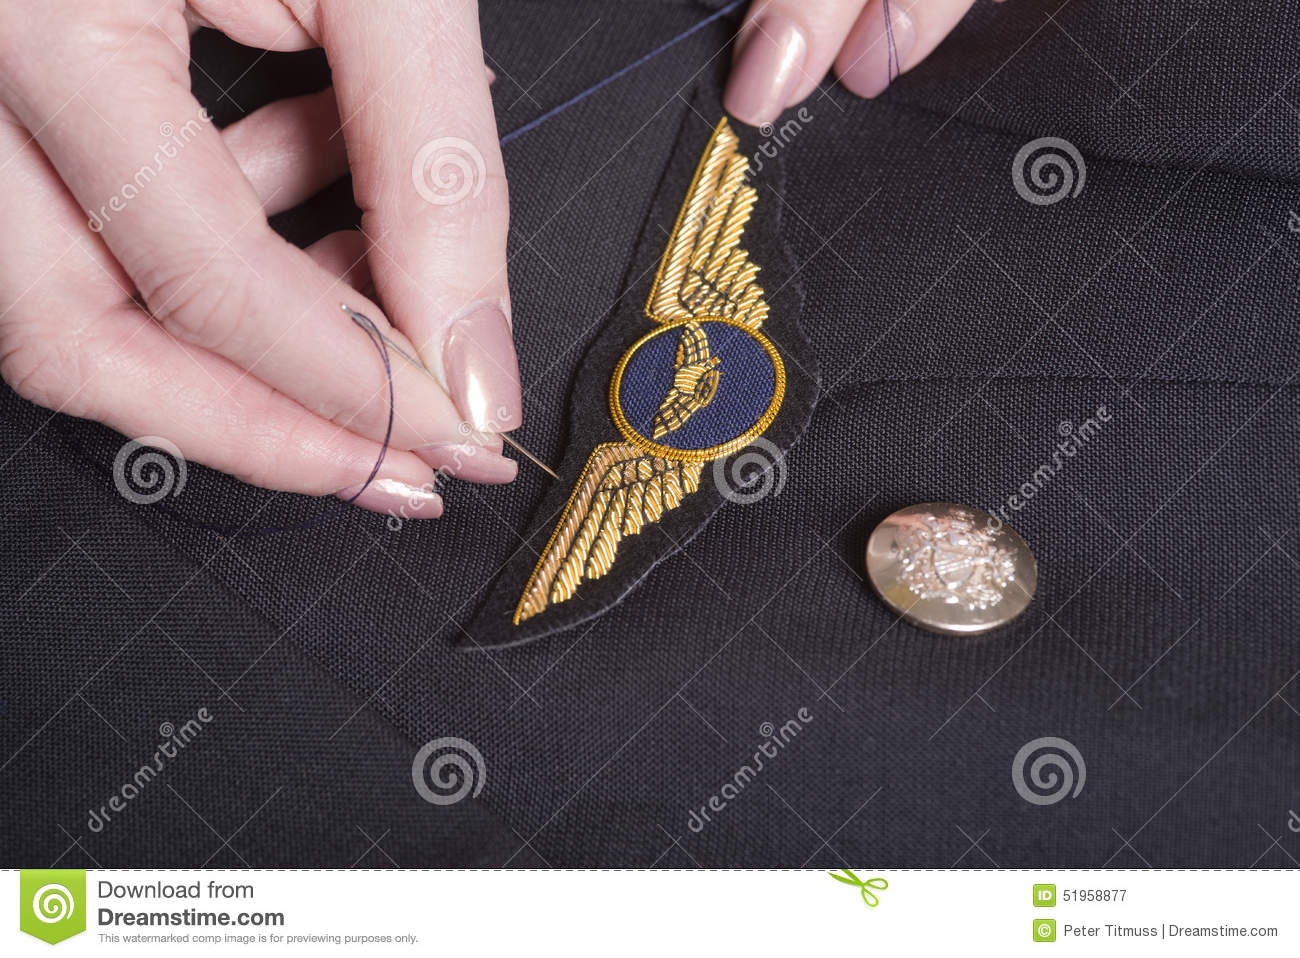 Pilots Wings Being Sewn Onto Uniform Stock Image - Image of wings